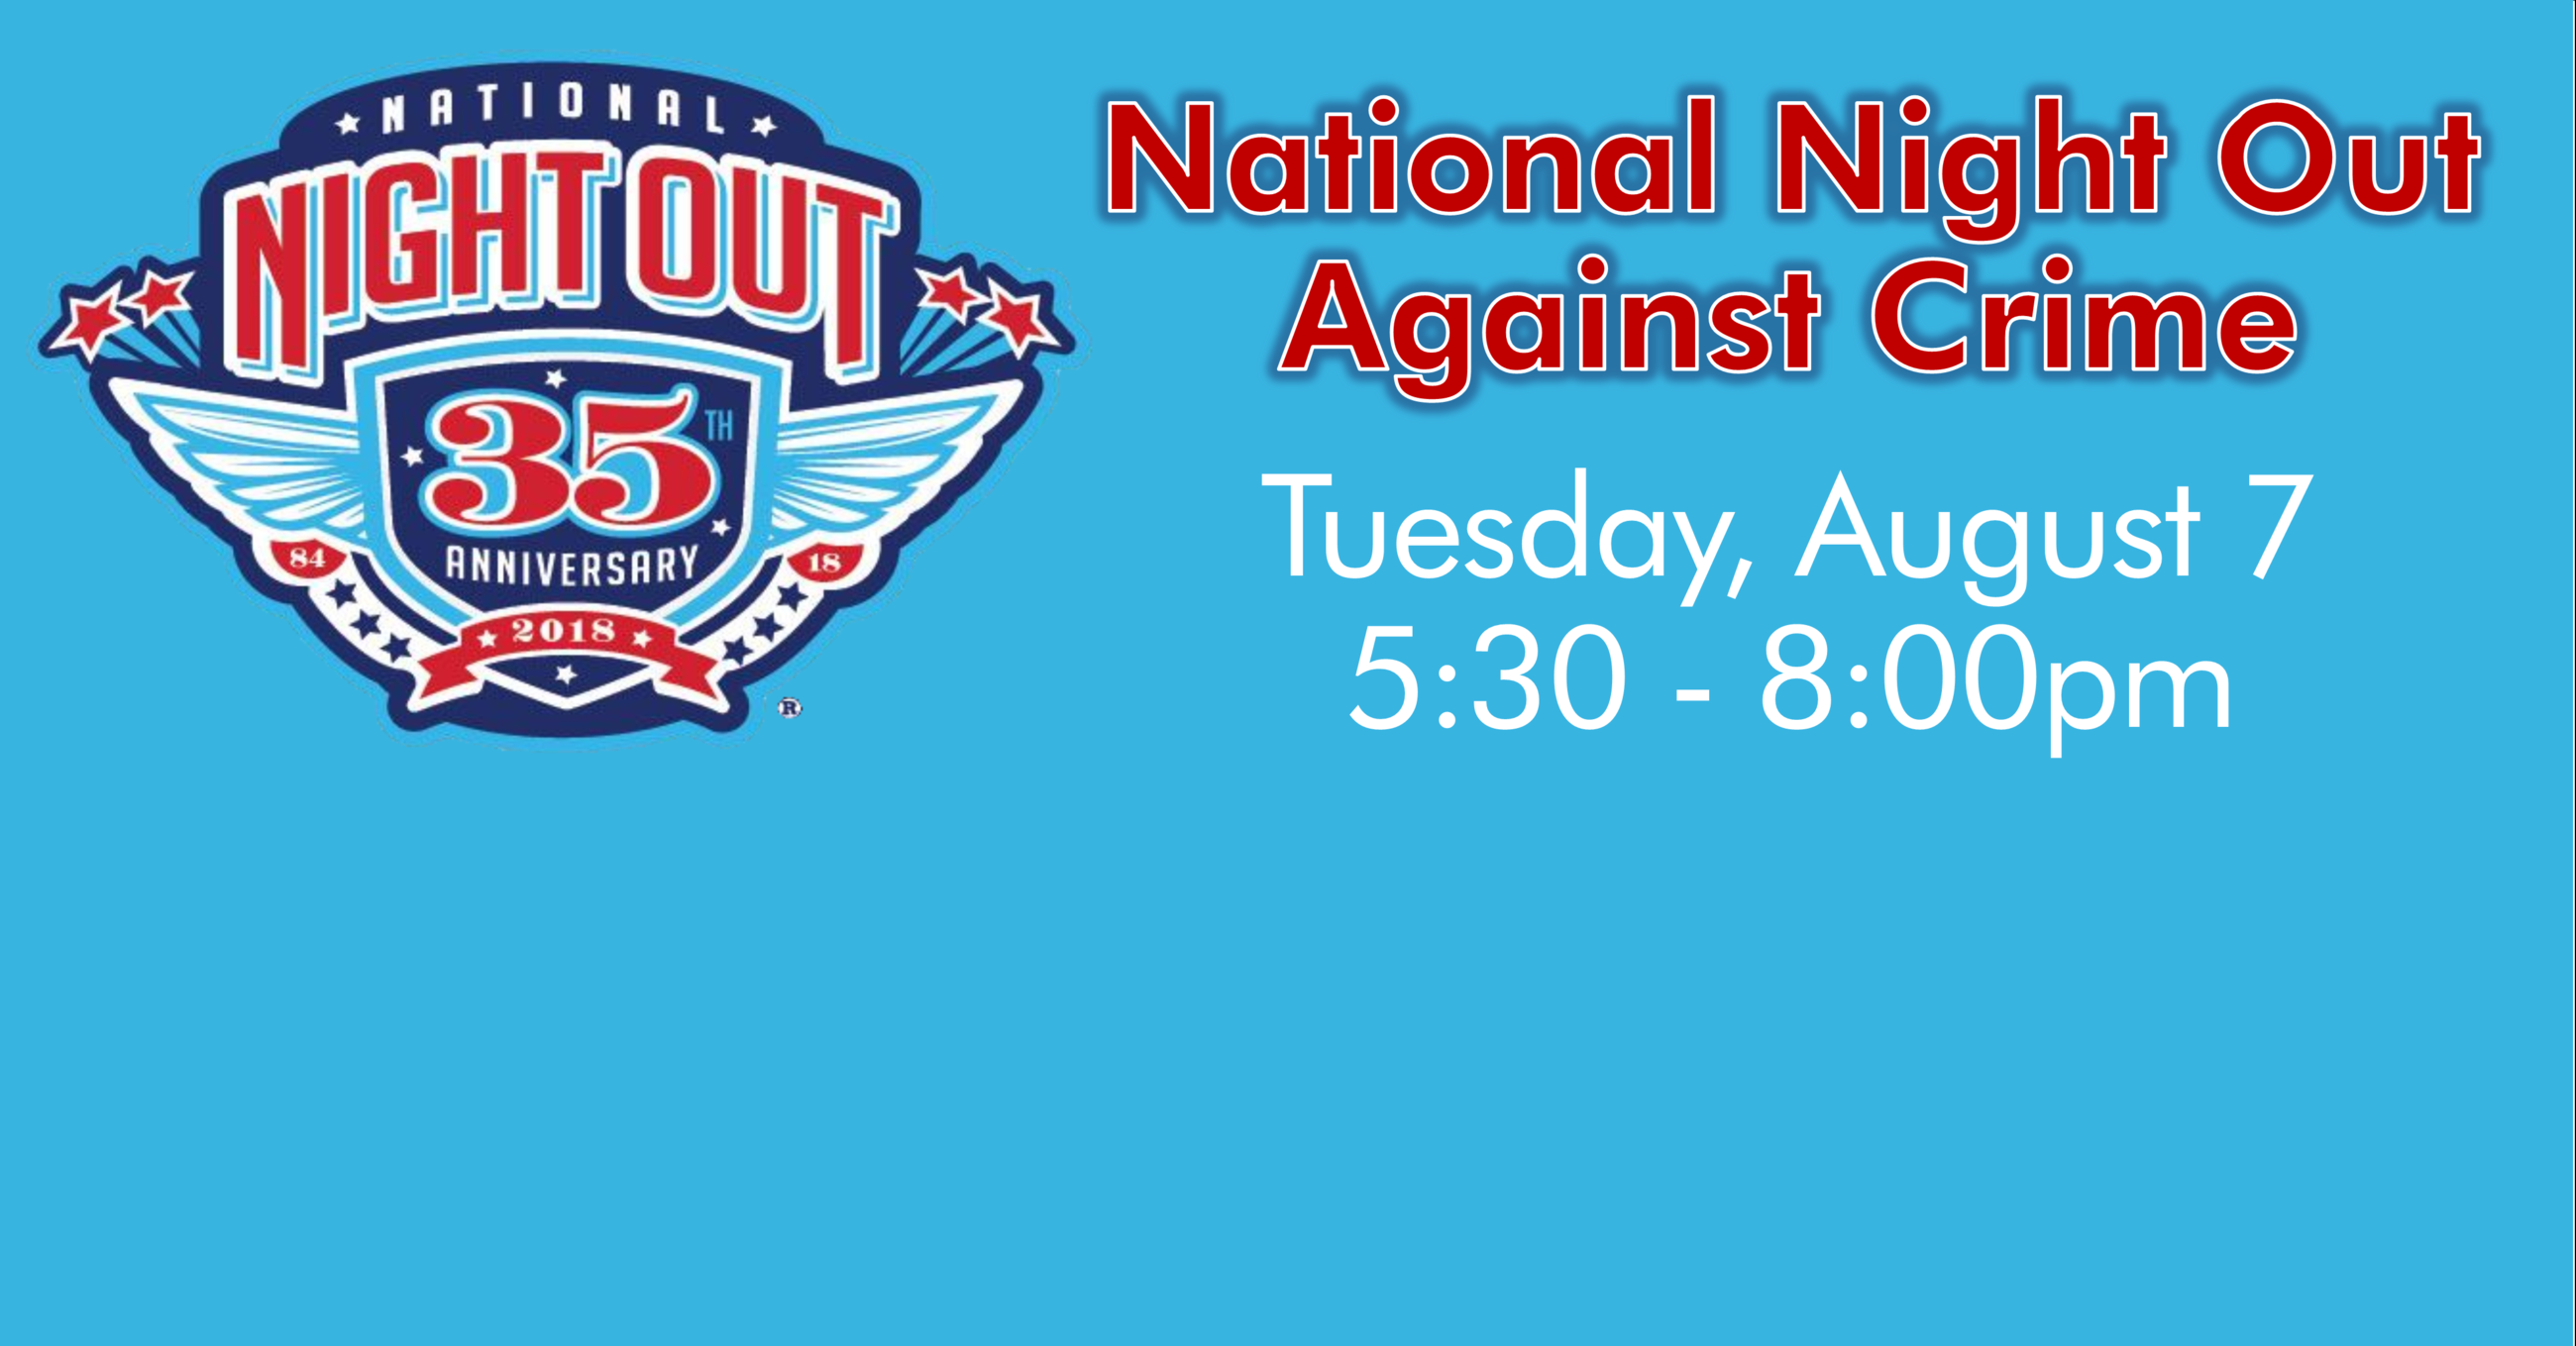 National Night Out 35th Anniversary 2018 logo; National Night Out Against Crime, Tuesday, August 7,